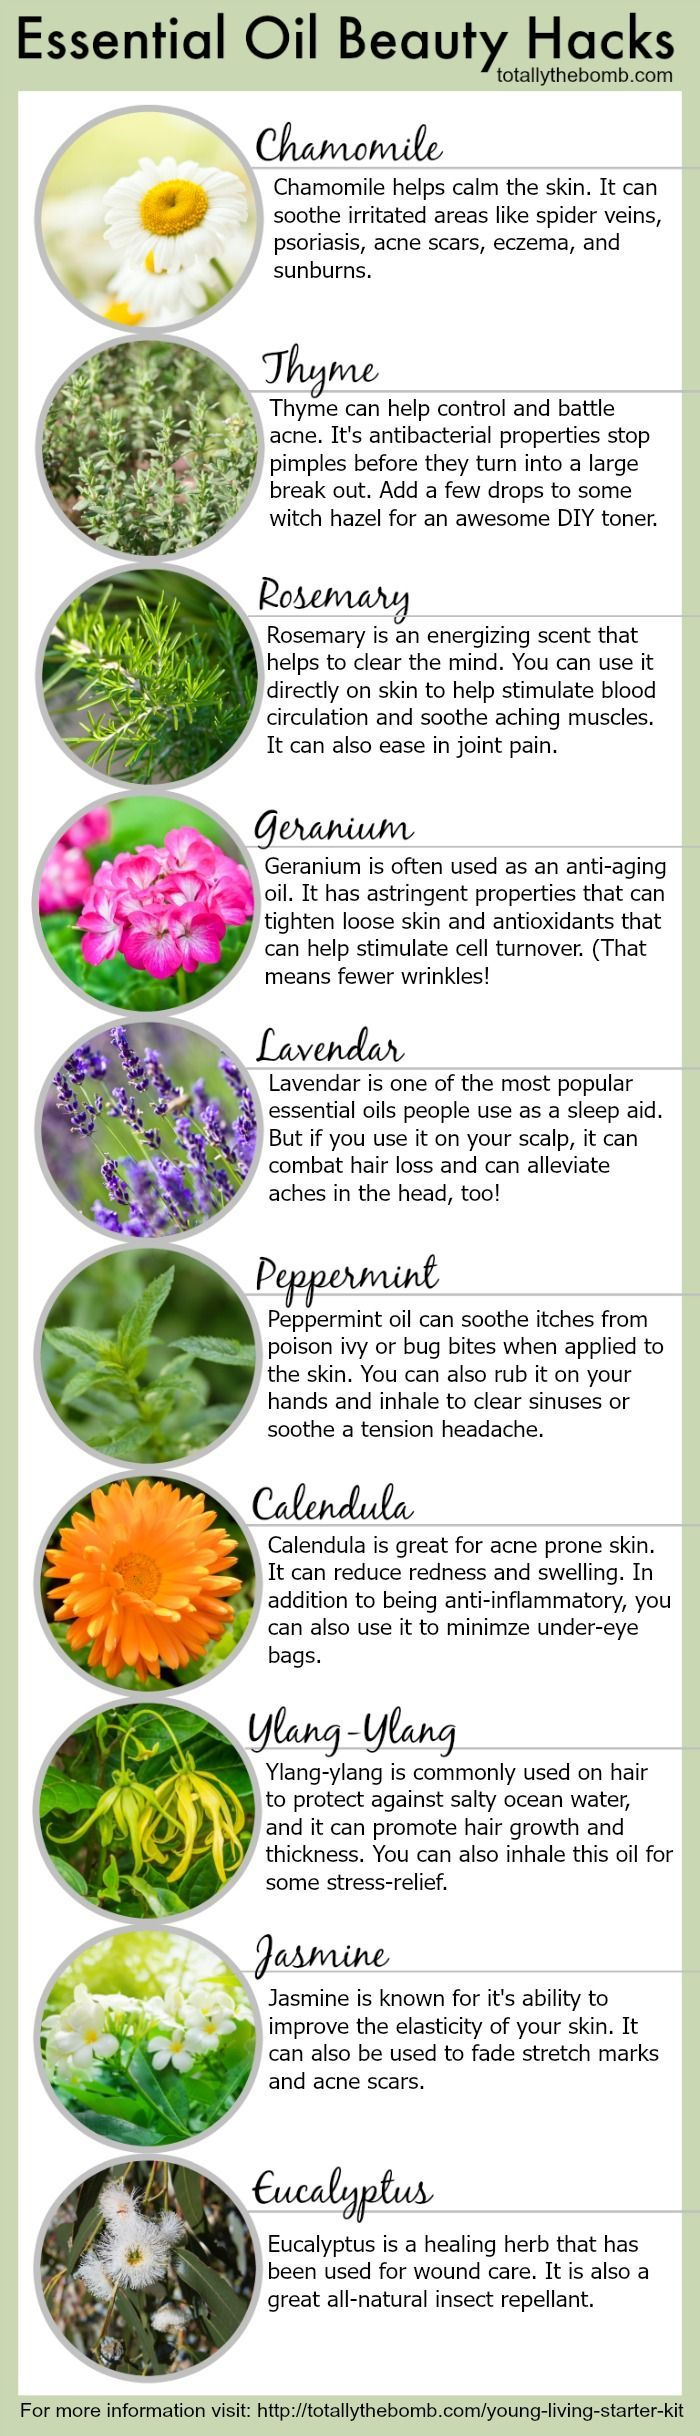 Great information about which essential oils to use for your skin!